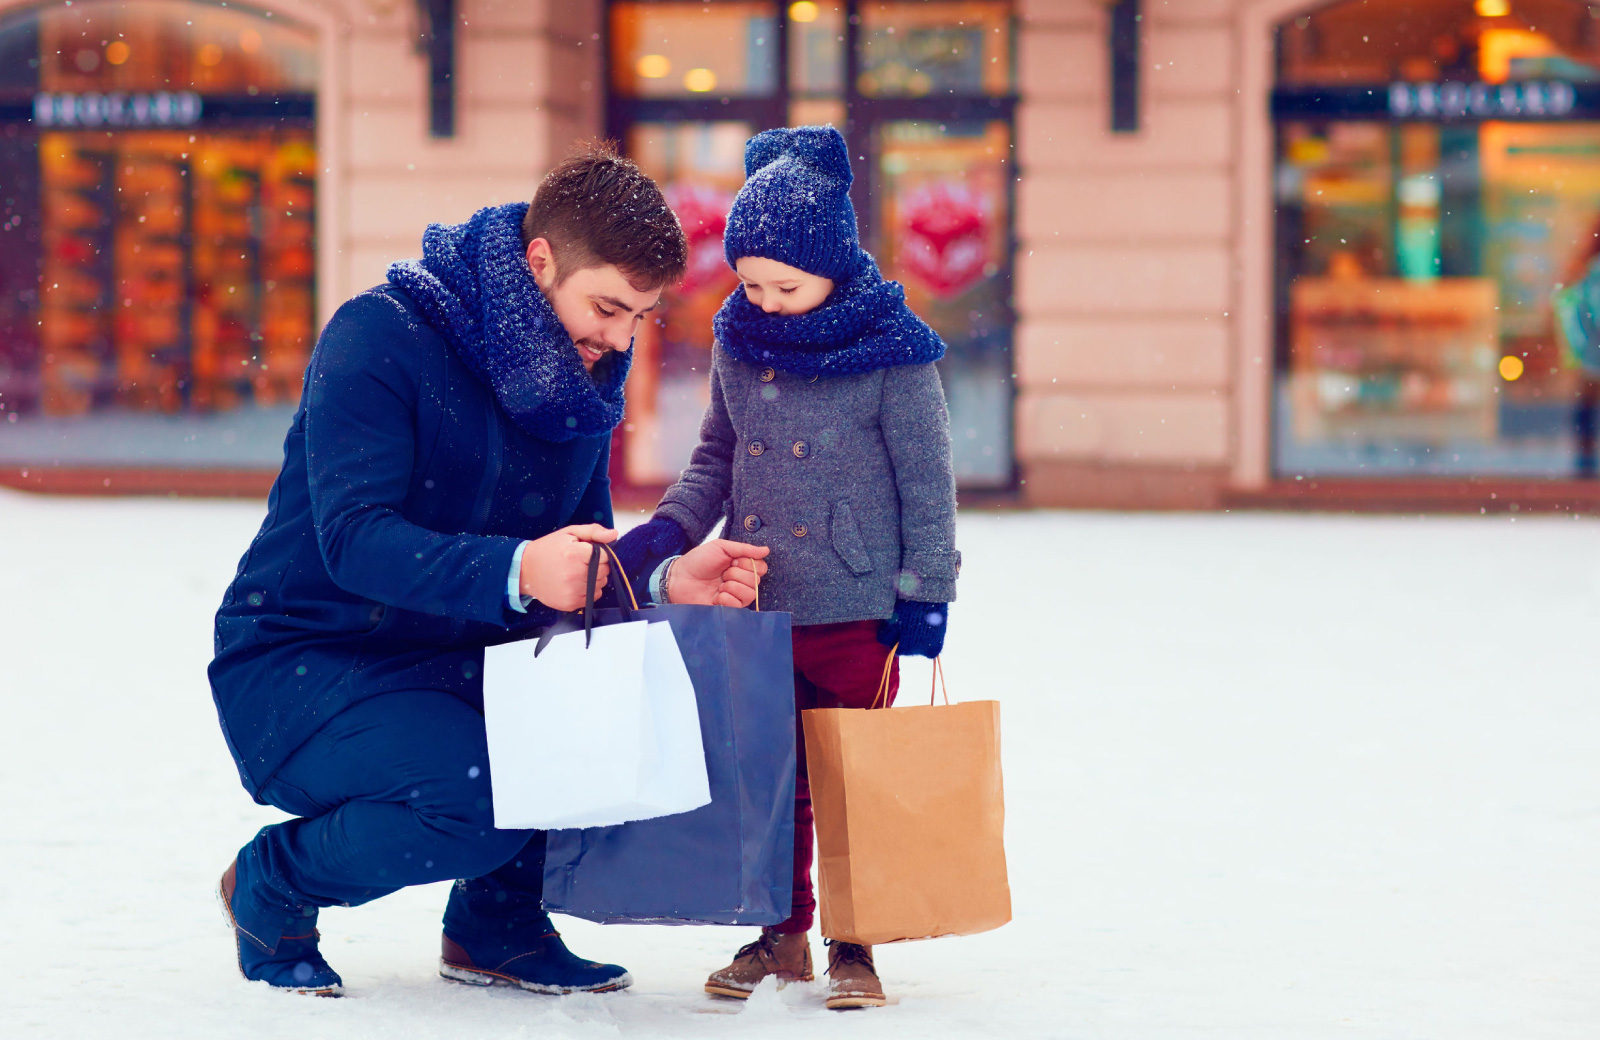 man and child in winter coats